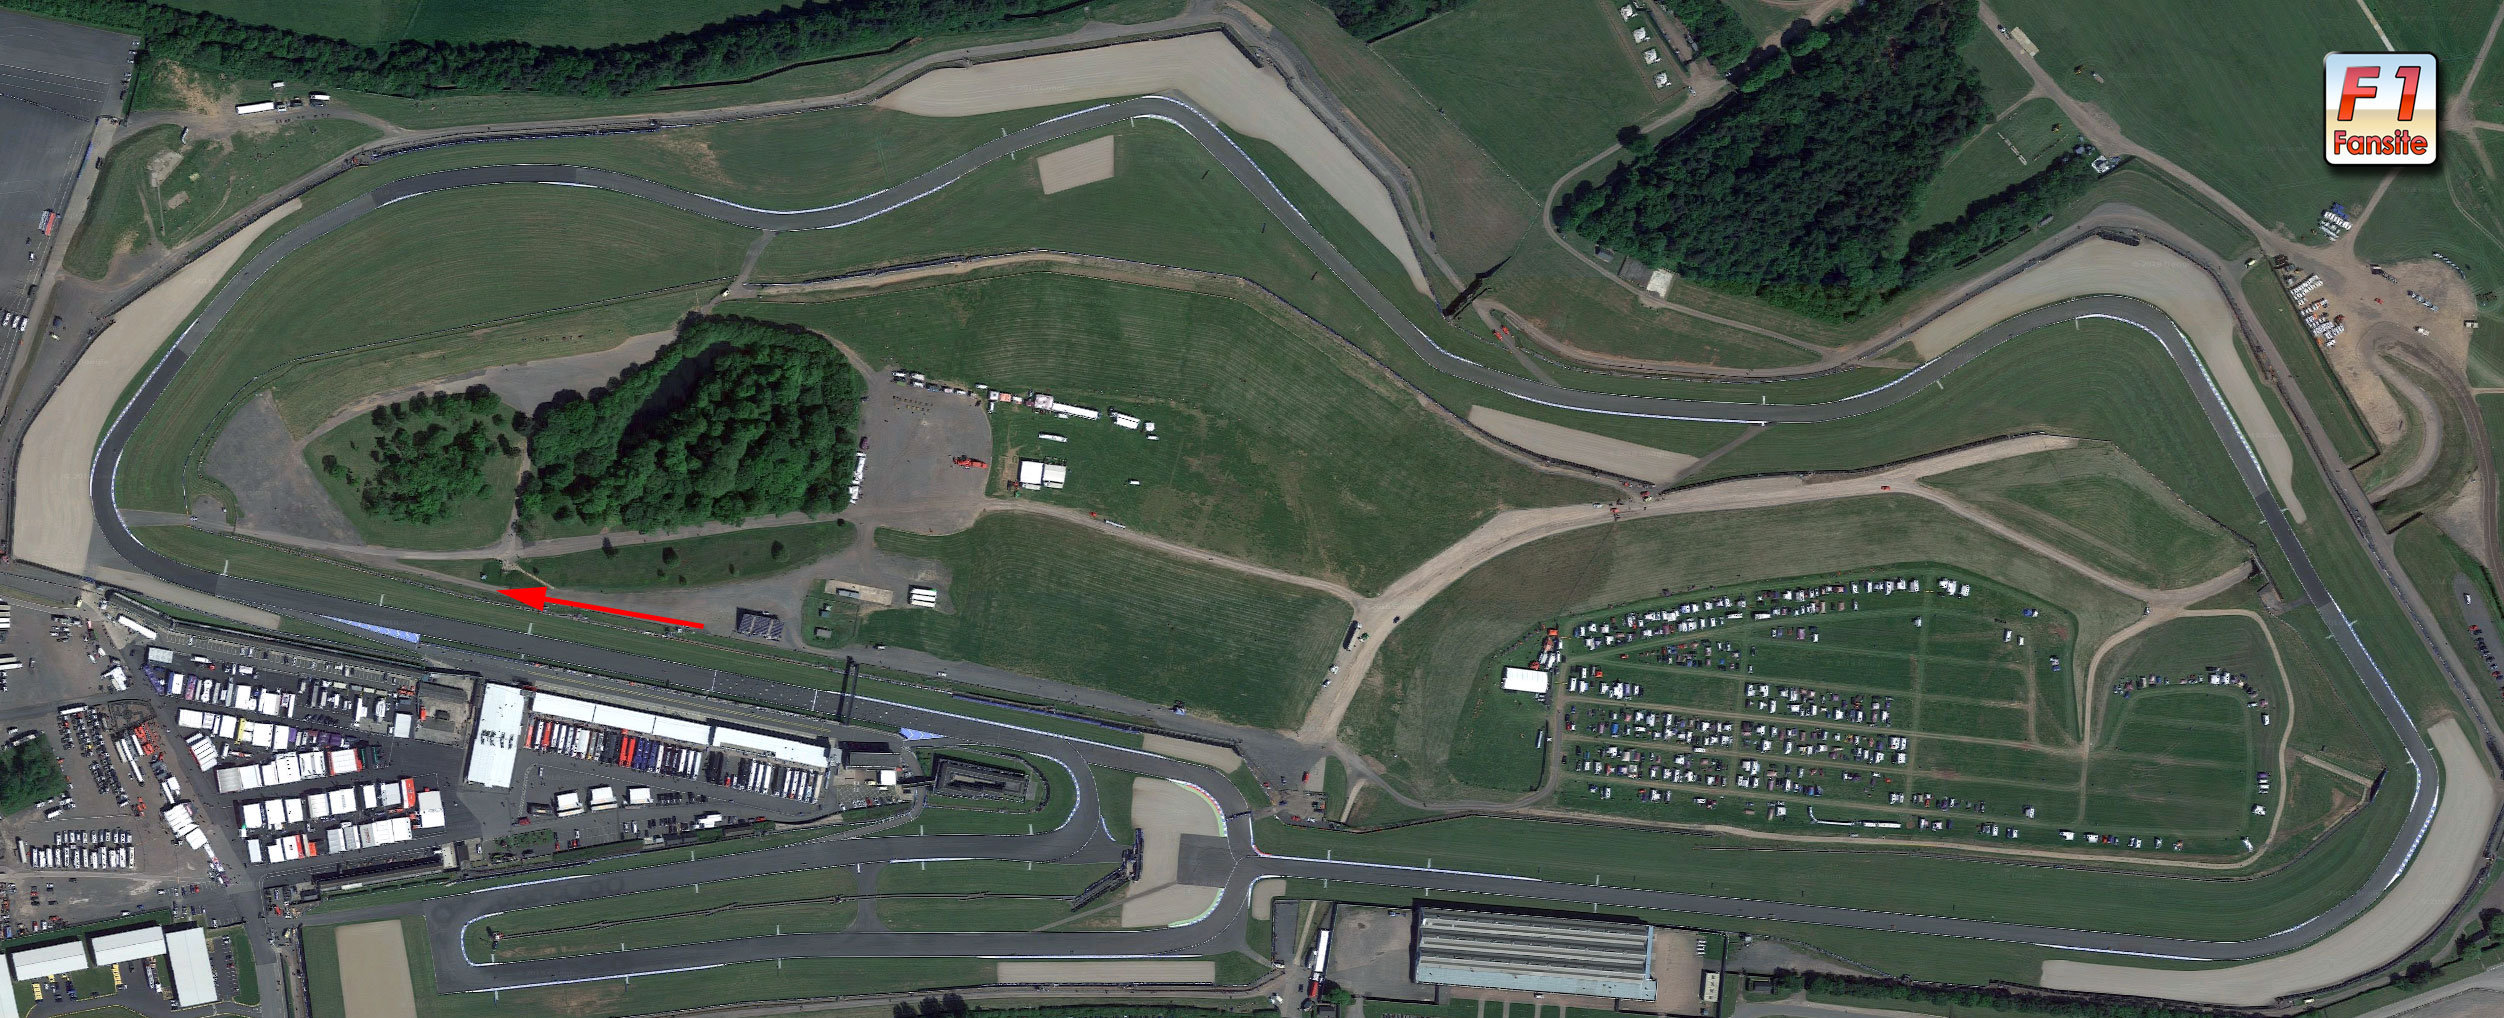 Donnington Park Circuit layout